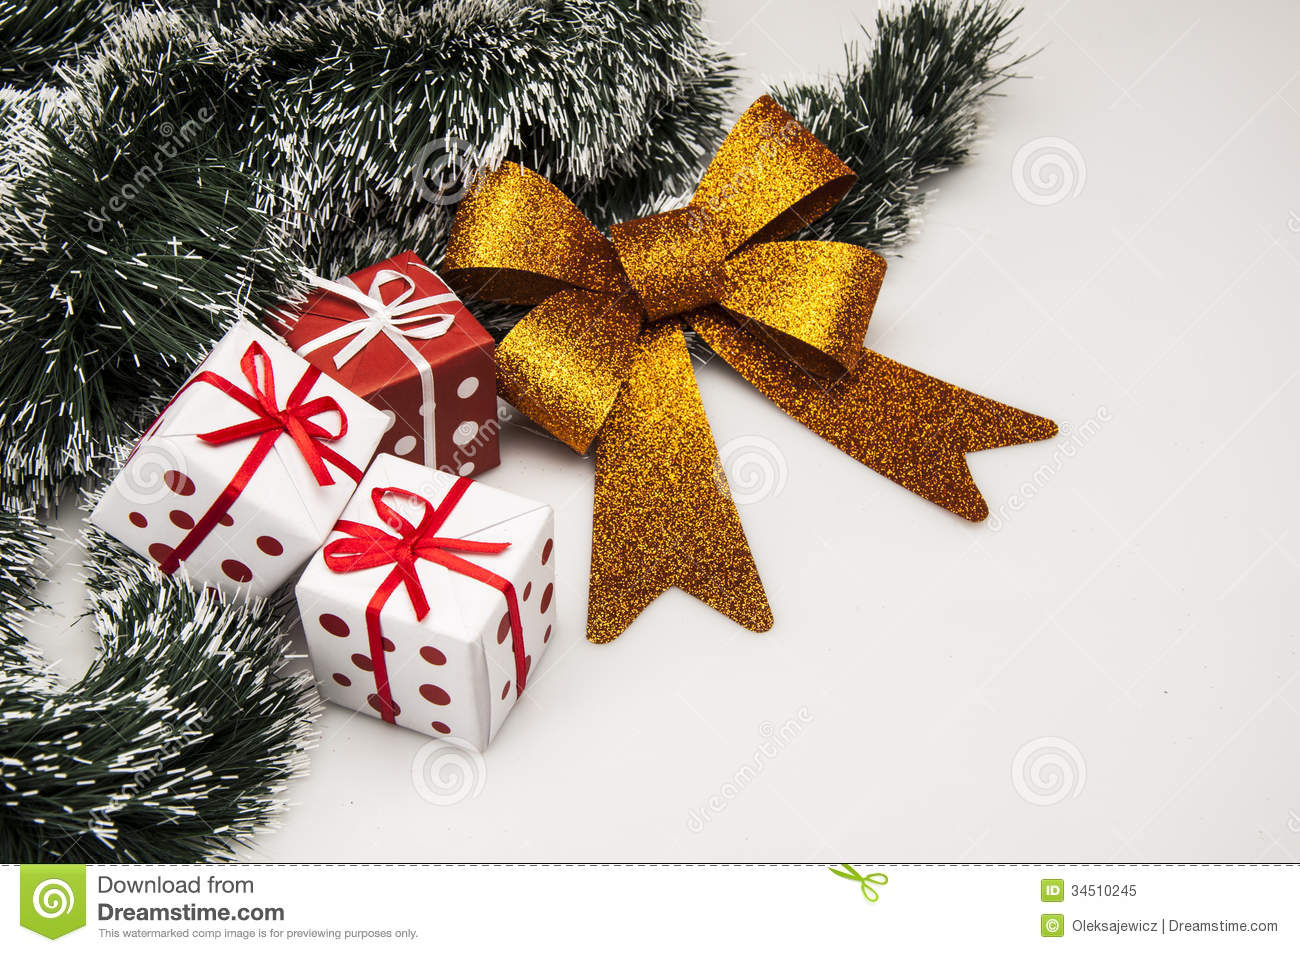 download christmas stuff with light background stock image image of card decoration 34510245